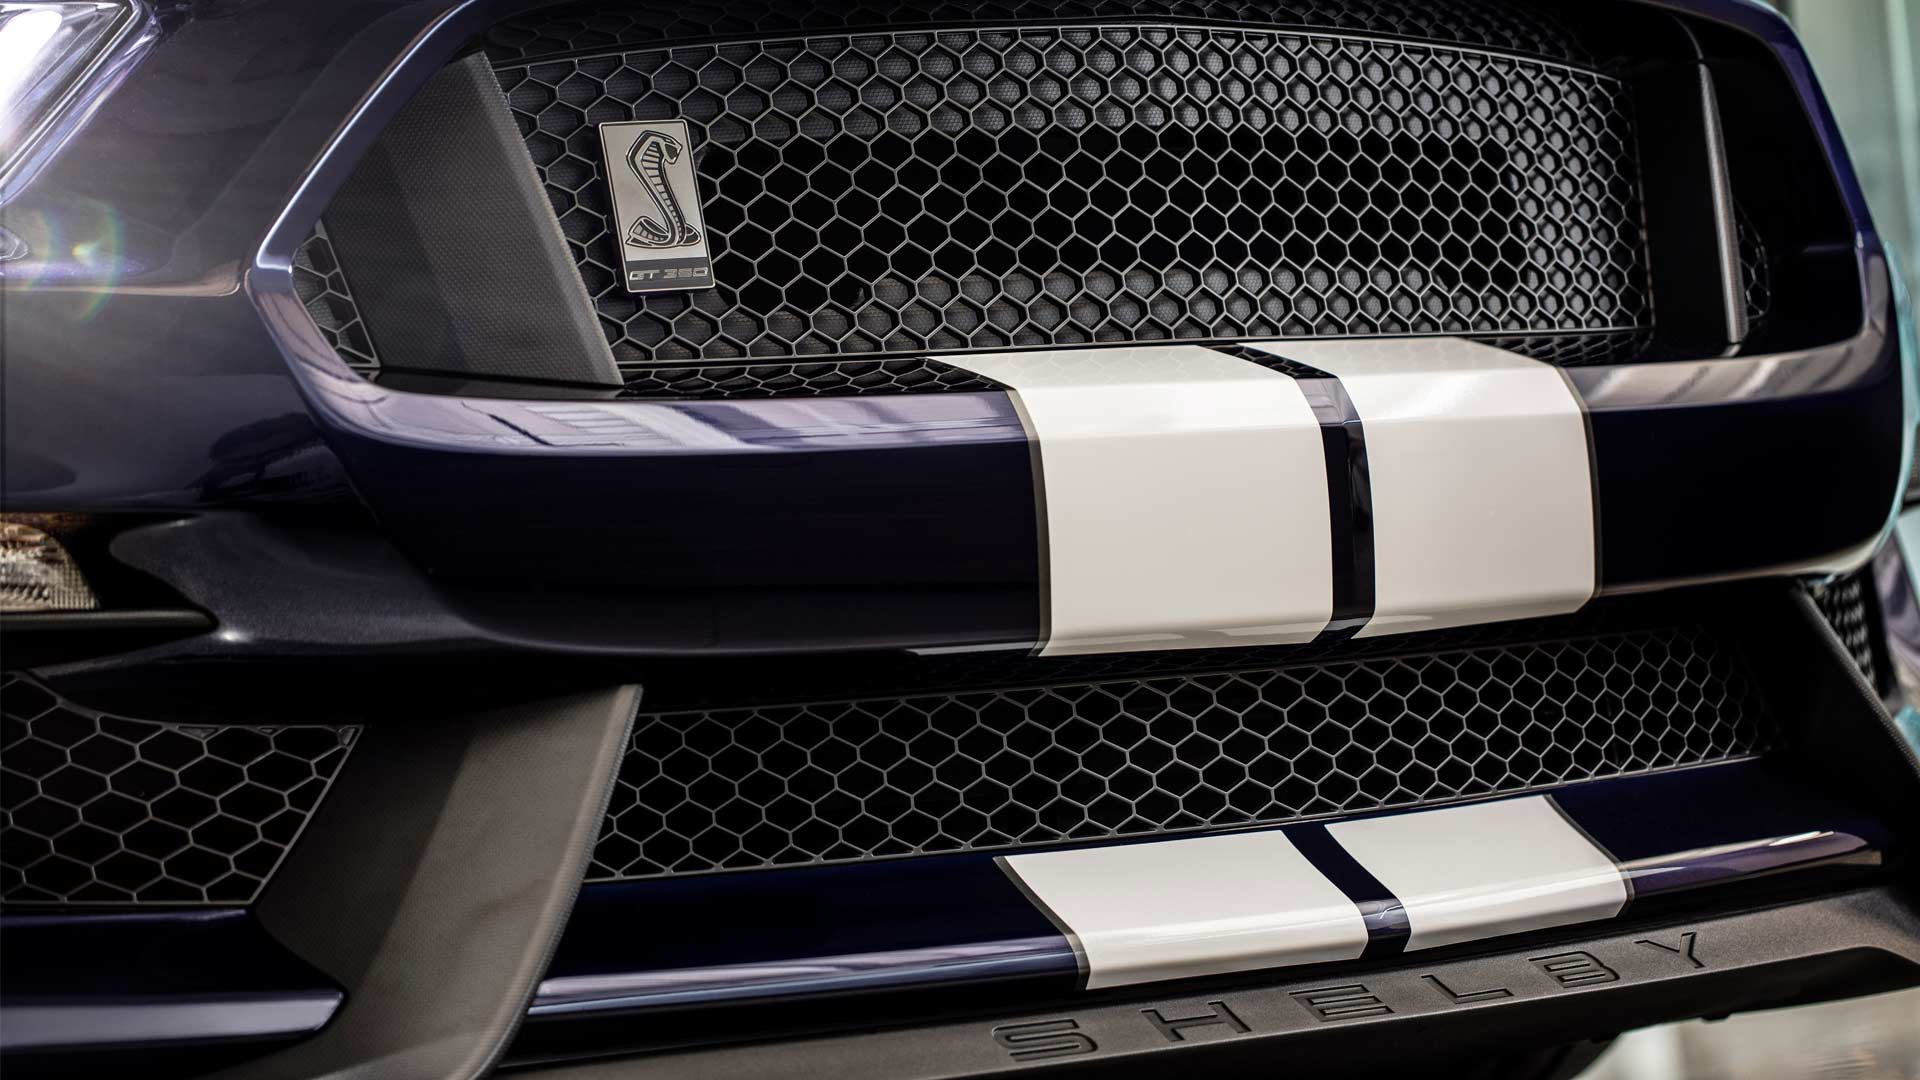 2019-Mustang-Shelby-GT350_8